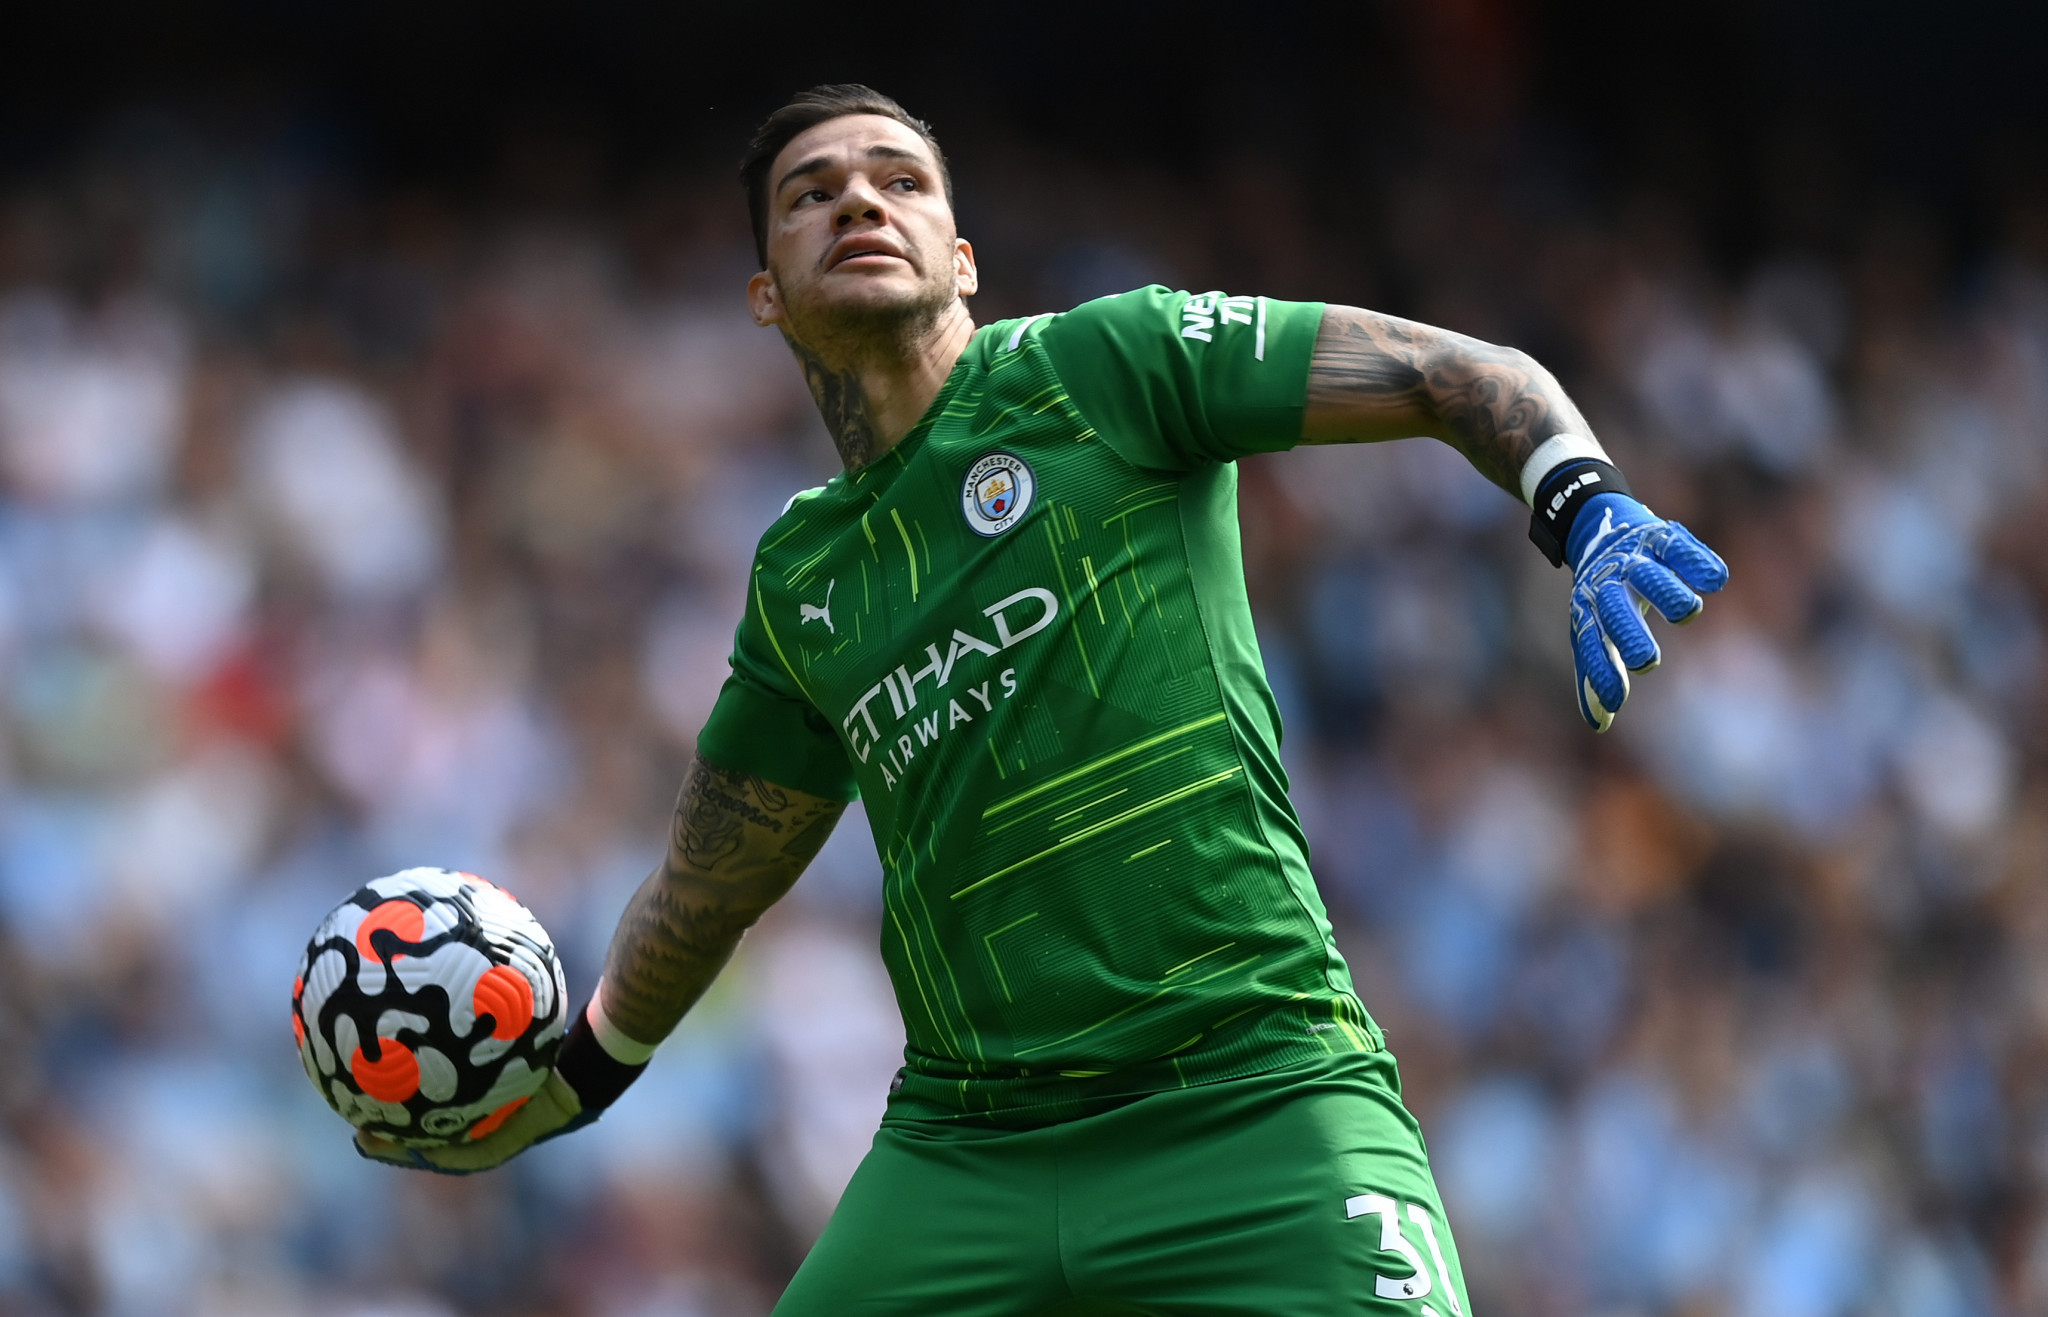 Manchester City goalkeeper Ederson is one of 11 players who will now be able to play in this weekend's Premier League matches ©Getty Images